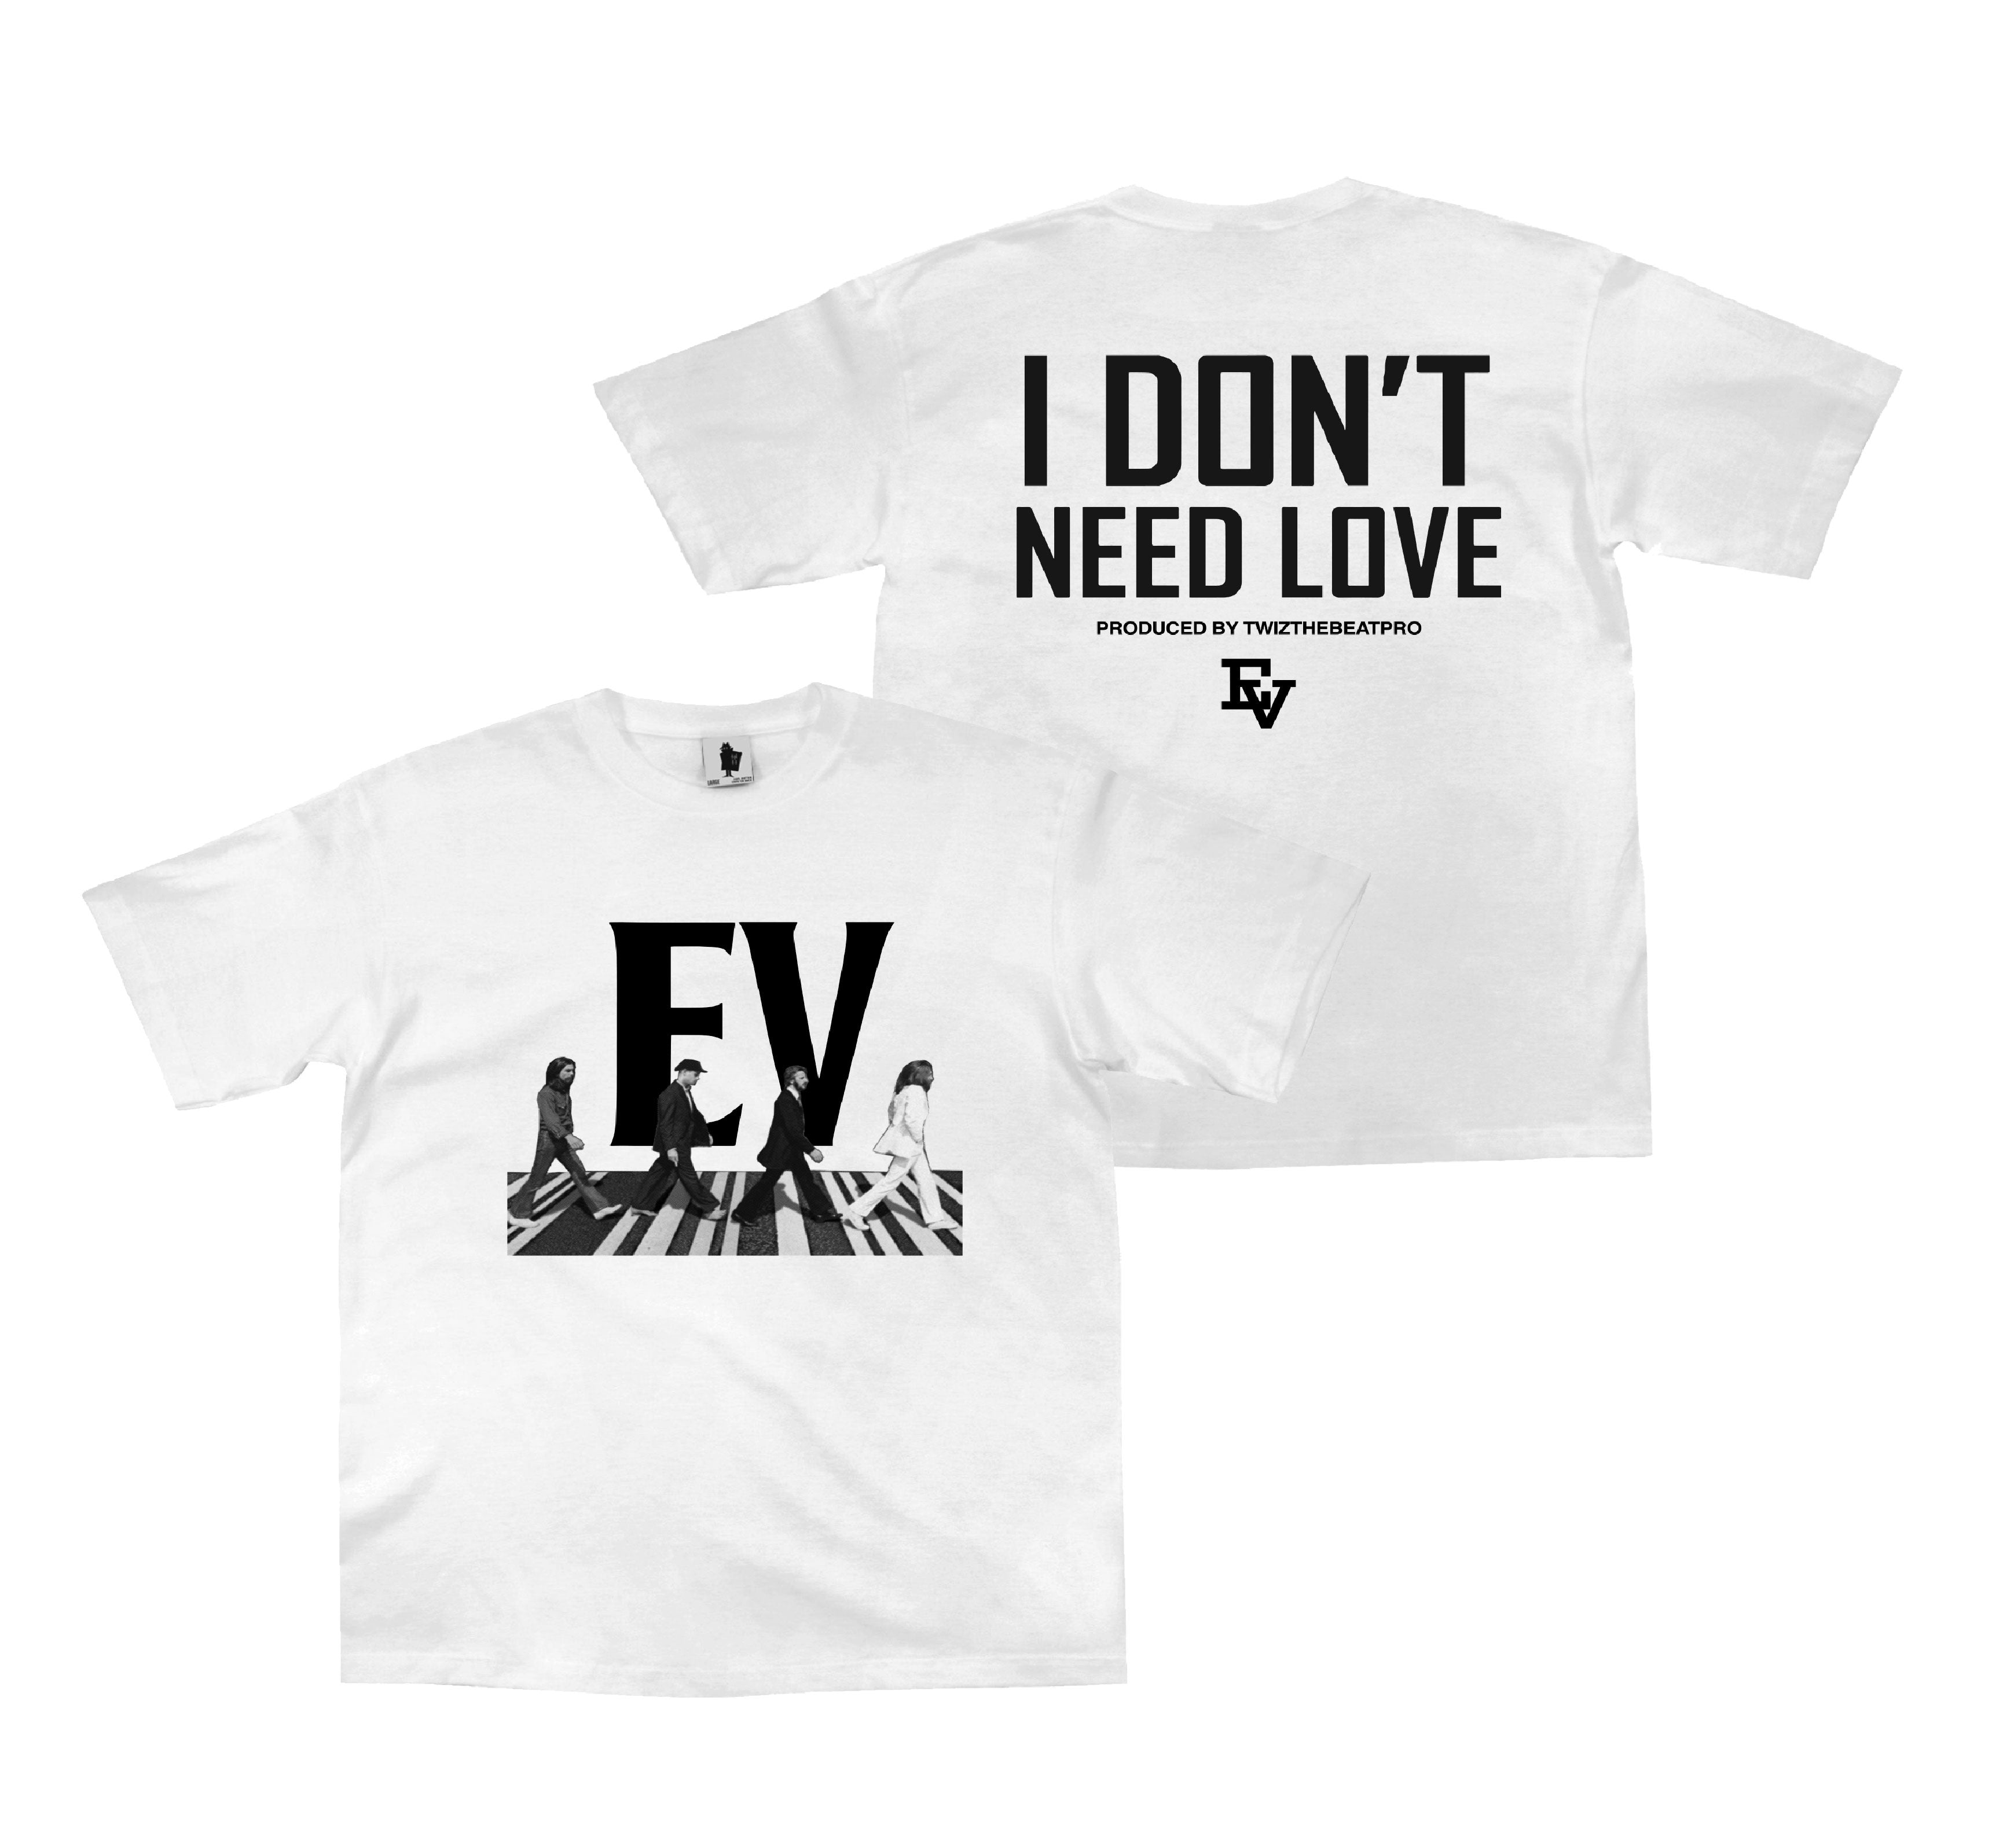 """ROAD"" I DON'T NEED LOVE - LIMITED EDITION T-SHIRT"